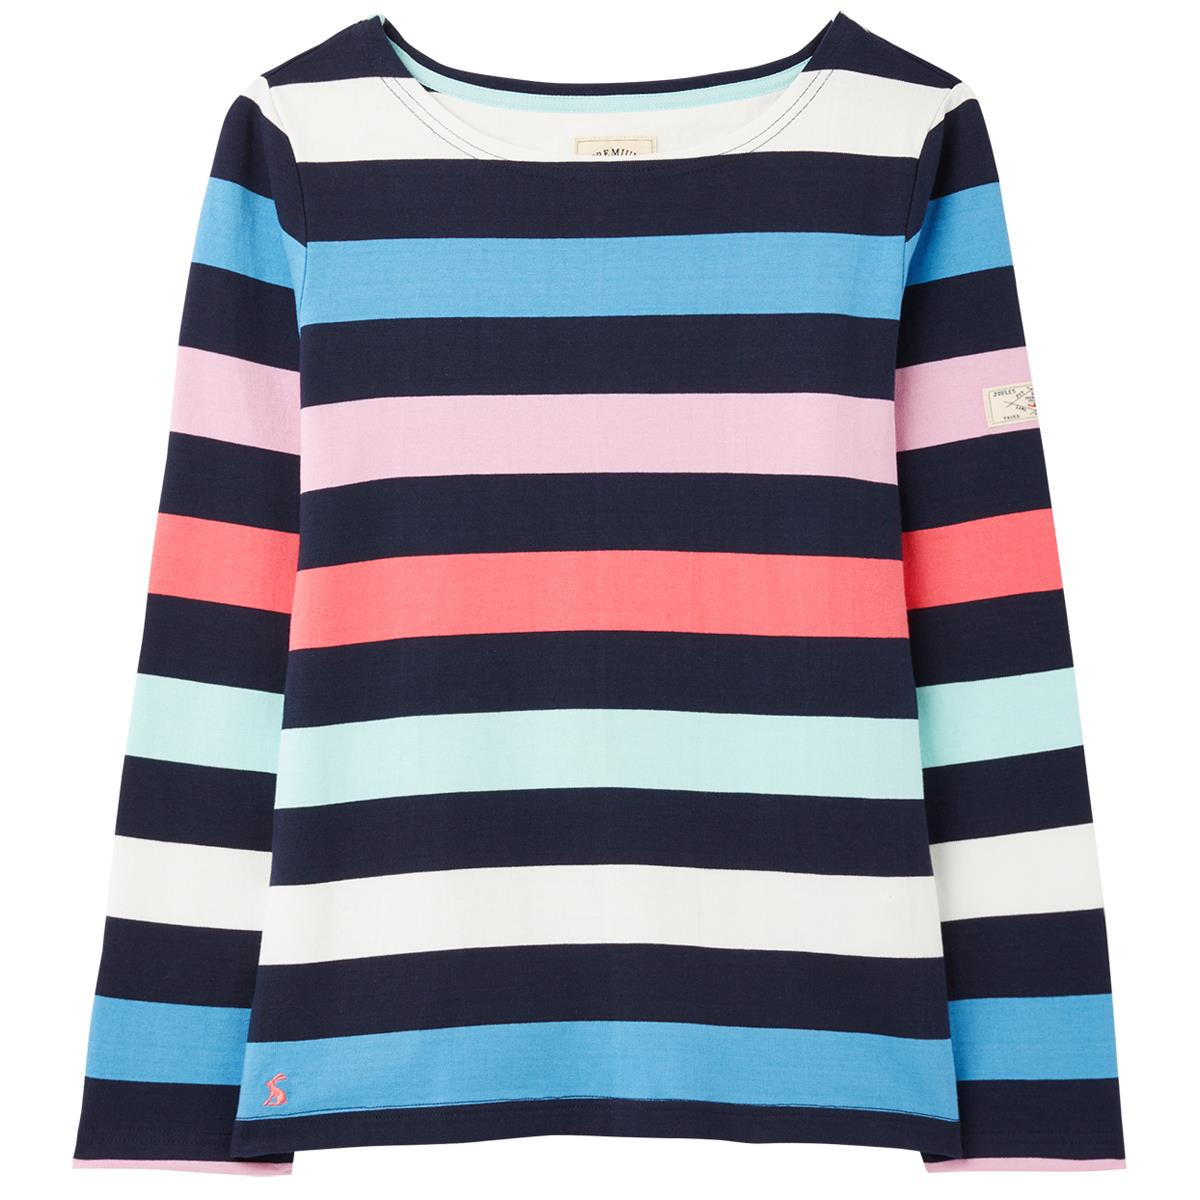 joules womens harbour long sleeve jersey top ss21 navy stripe 14